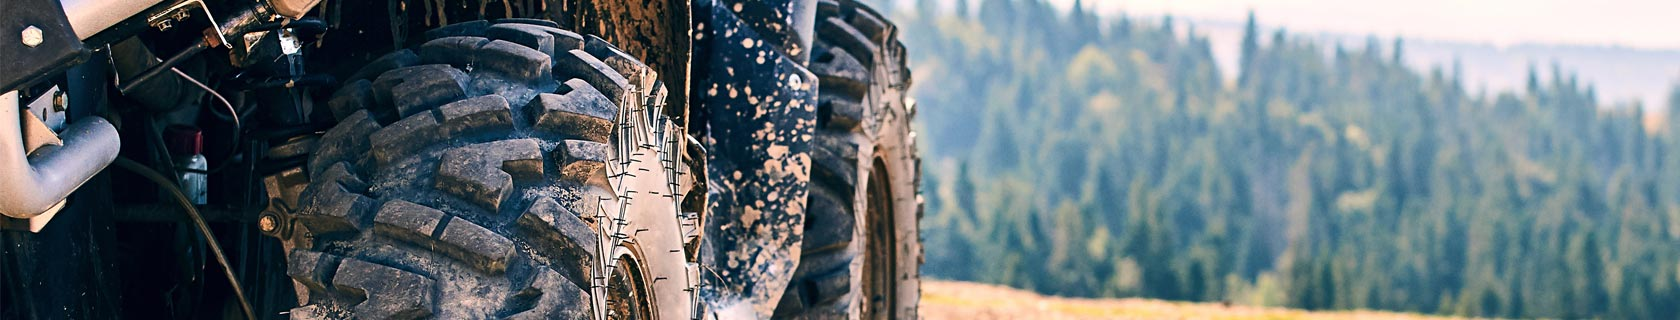 Close up of ATV tires covered in dirt and mud